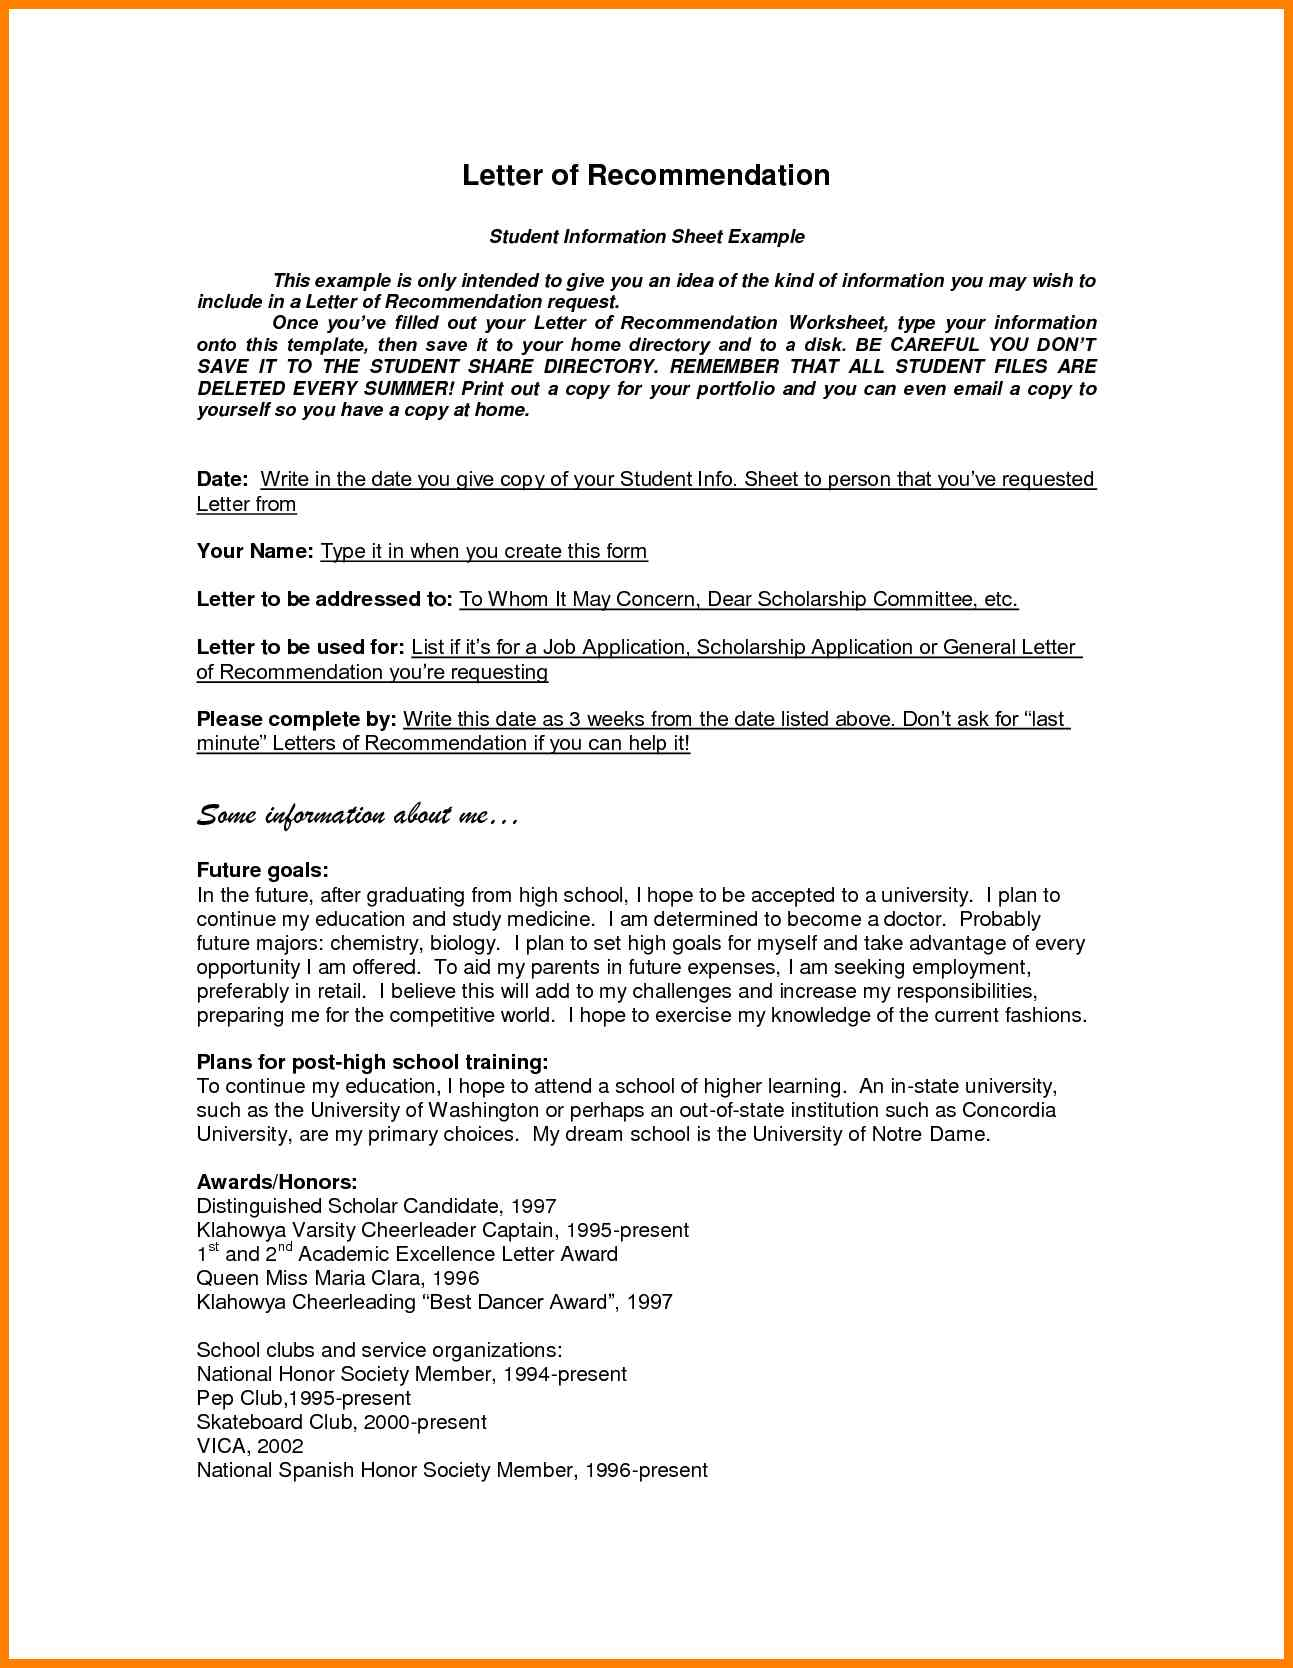 General Letter Of Recommendation Template - Inspirational Letter Re Mendation Template for Employee